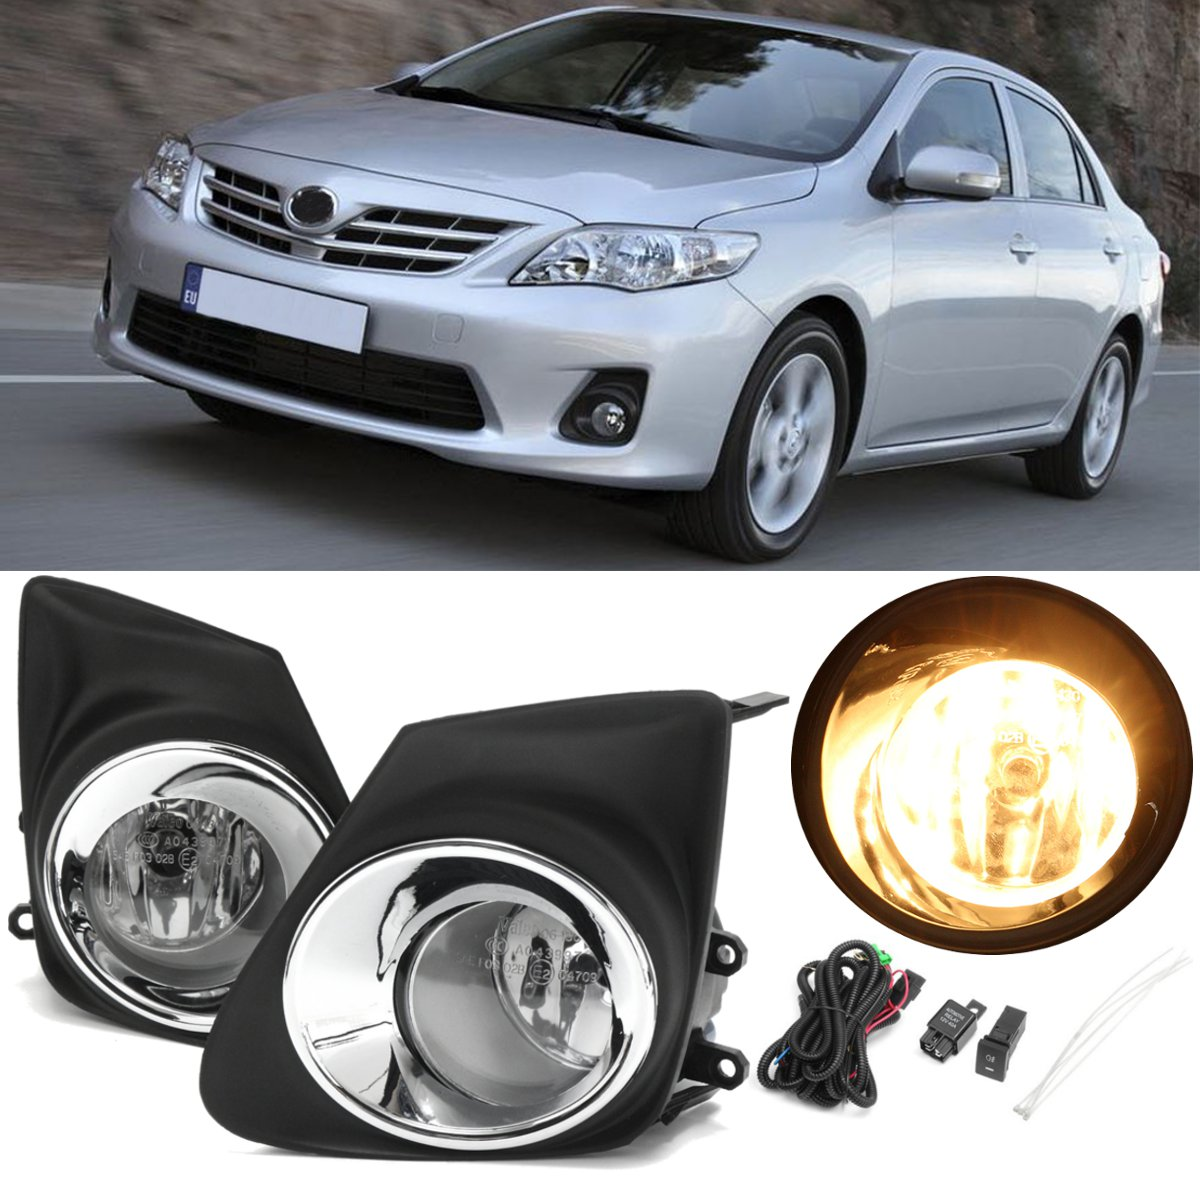 Pair Car Front Bumper Fog Lights Lamp With H11 Bulb Switch + 2pcs Grille Cover Yellow Lamp For <font><b>Toyota</b></font> <font><b>Corolla</b></font> <font><b>2011</b></font> 2012 <font><b>2013</b></font> New image